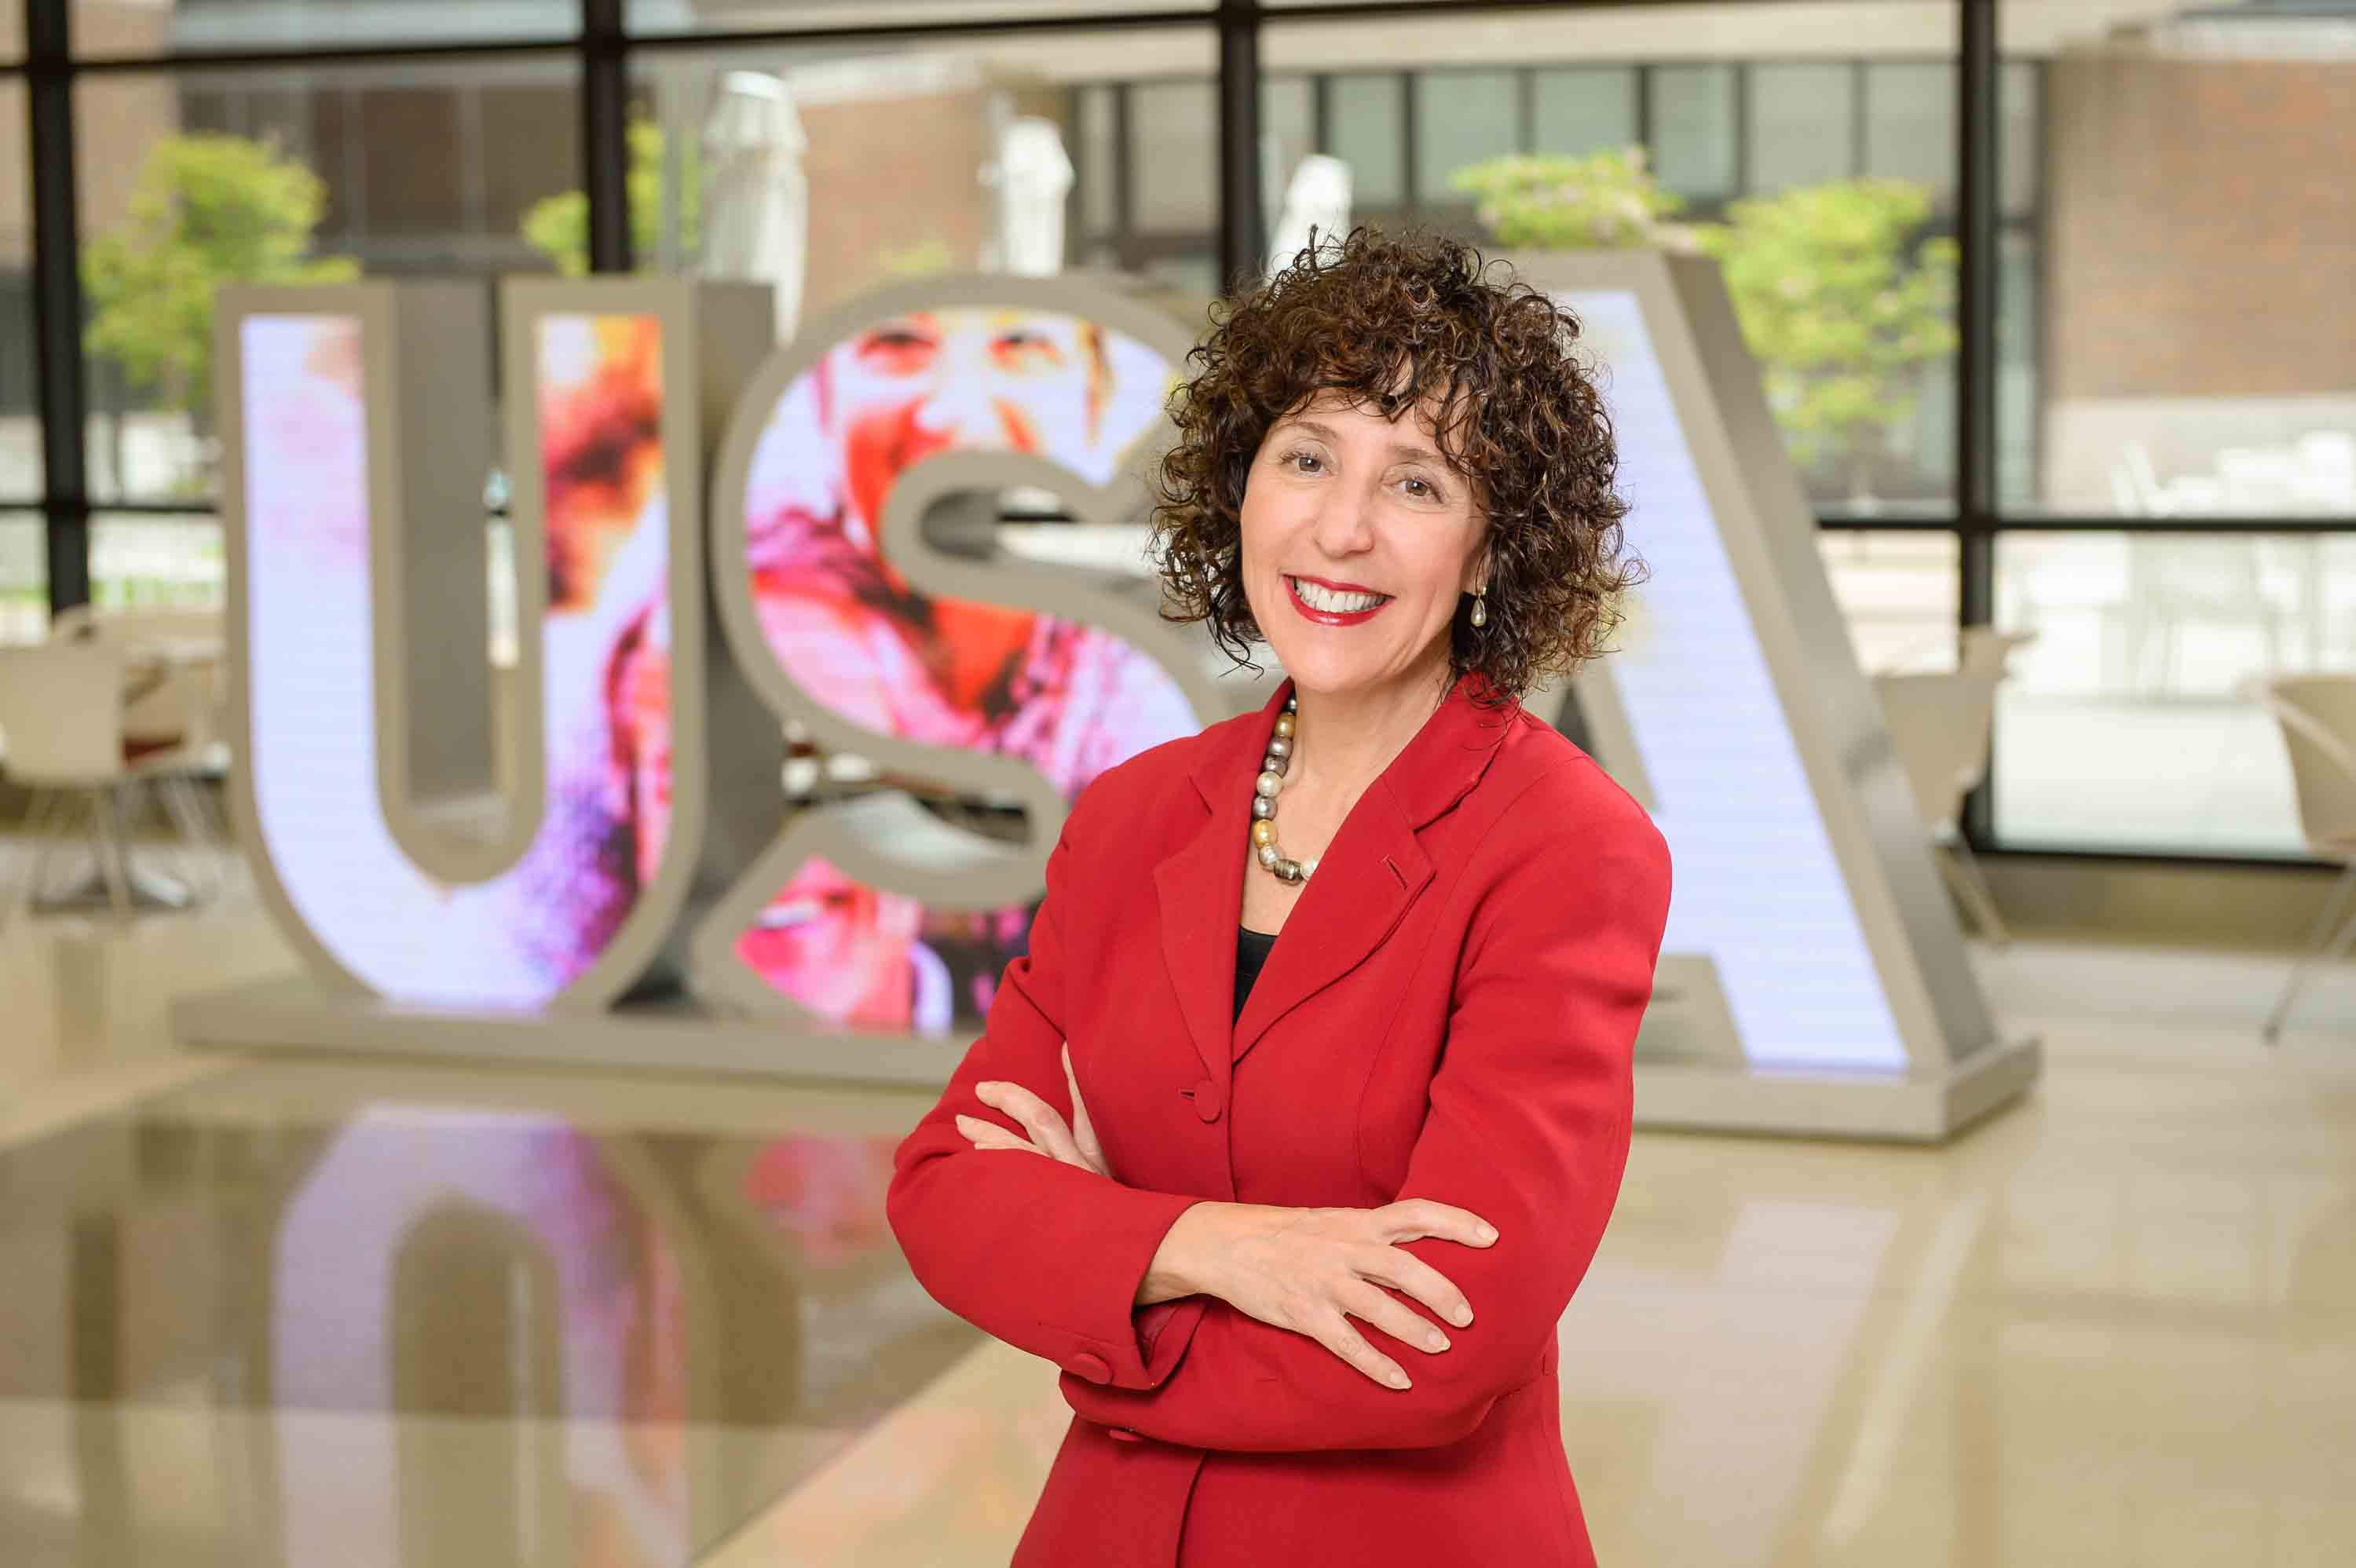 Ora Hirsch Pescovitz is one of two finalists for Oakland University's presidency.